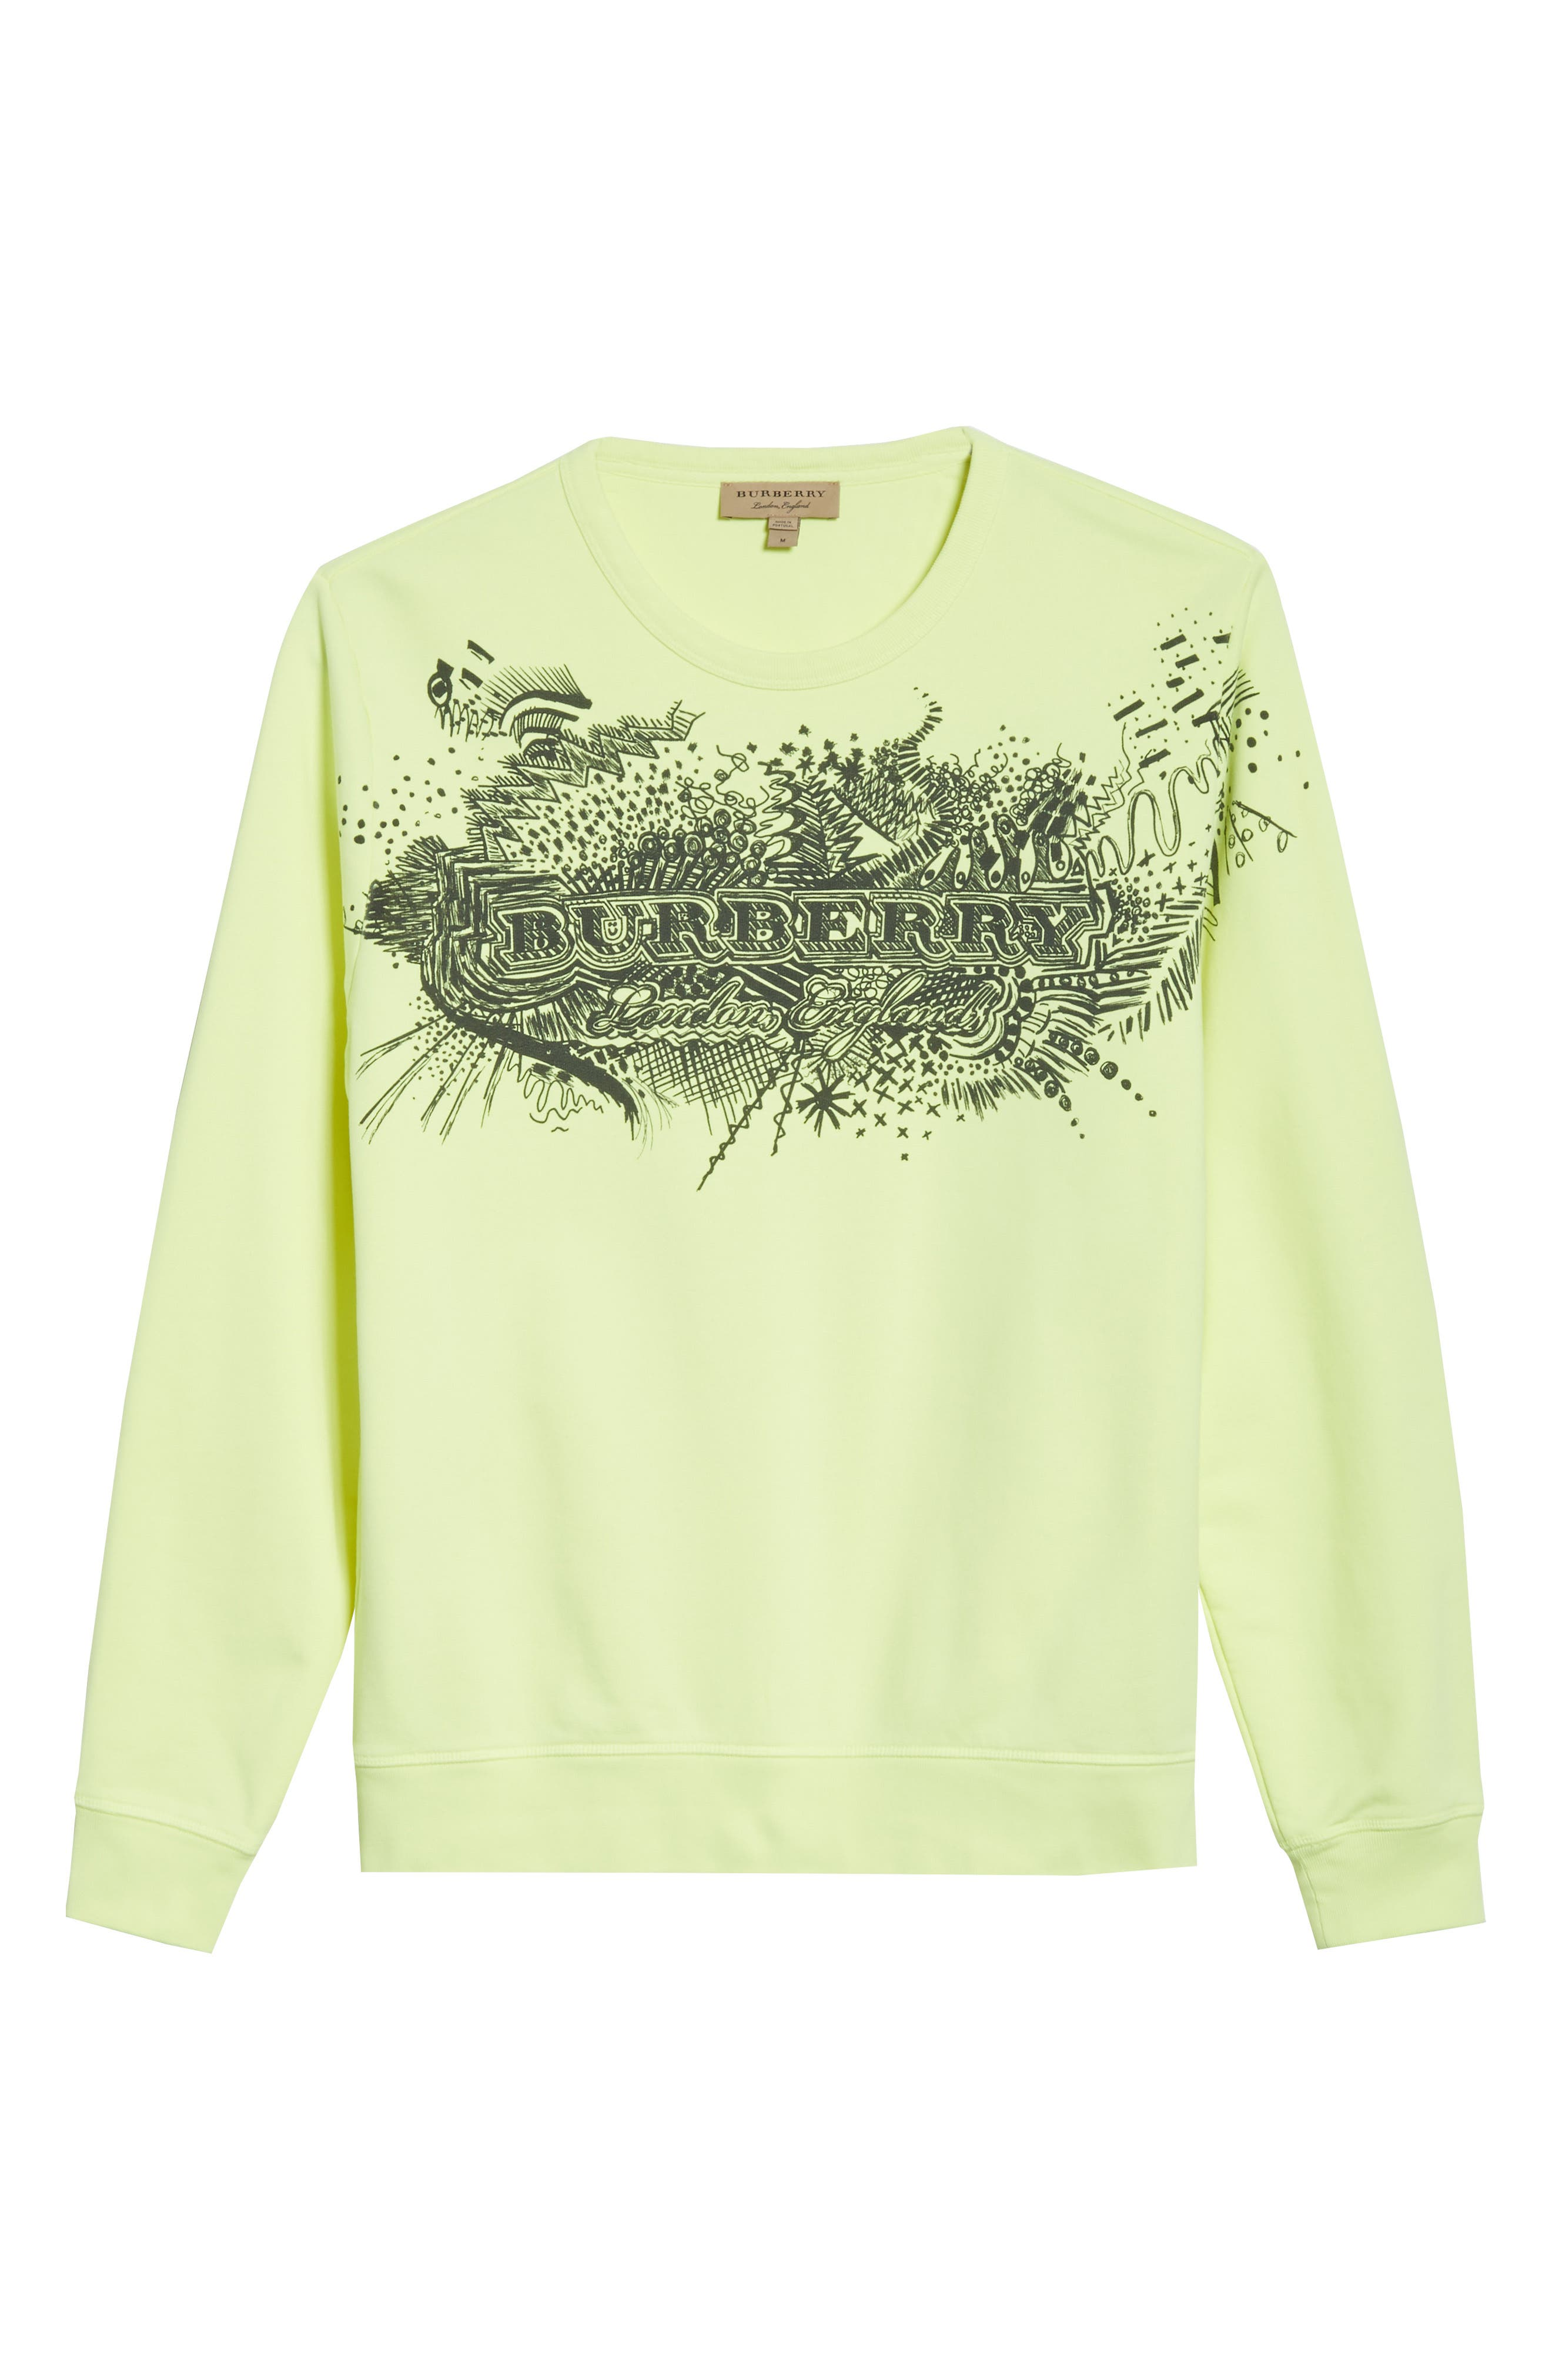 Sauer Graphic Crewneck Sweatshirt,                             Alternate thumbnail 6, color,                             Bright Lemon